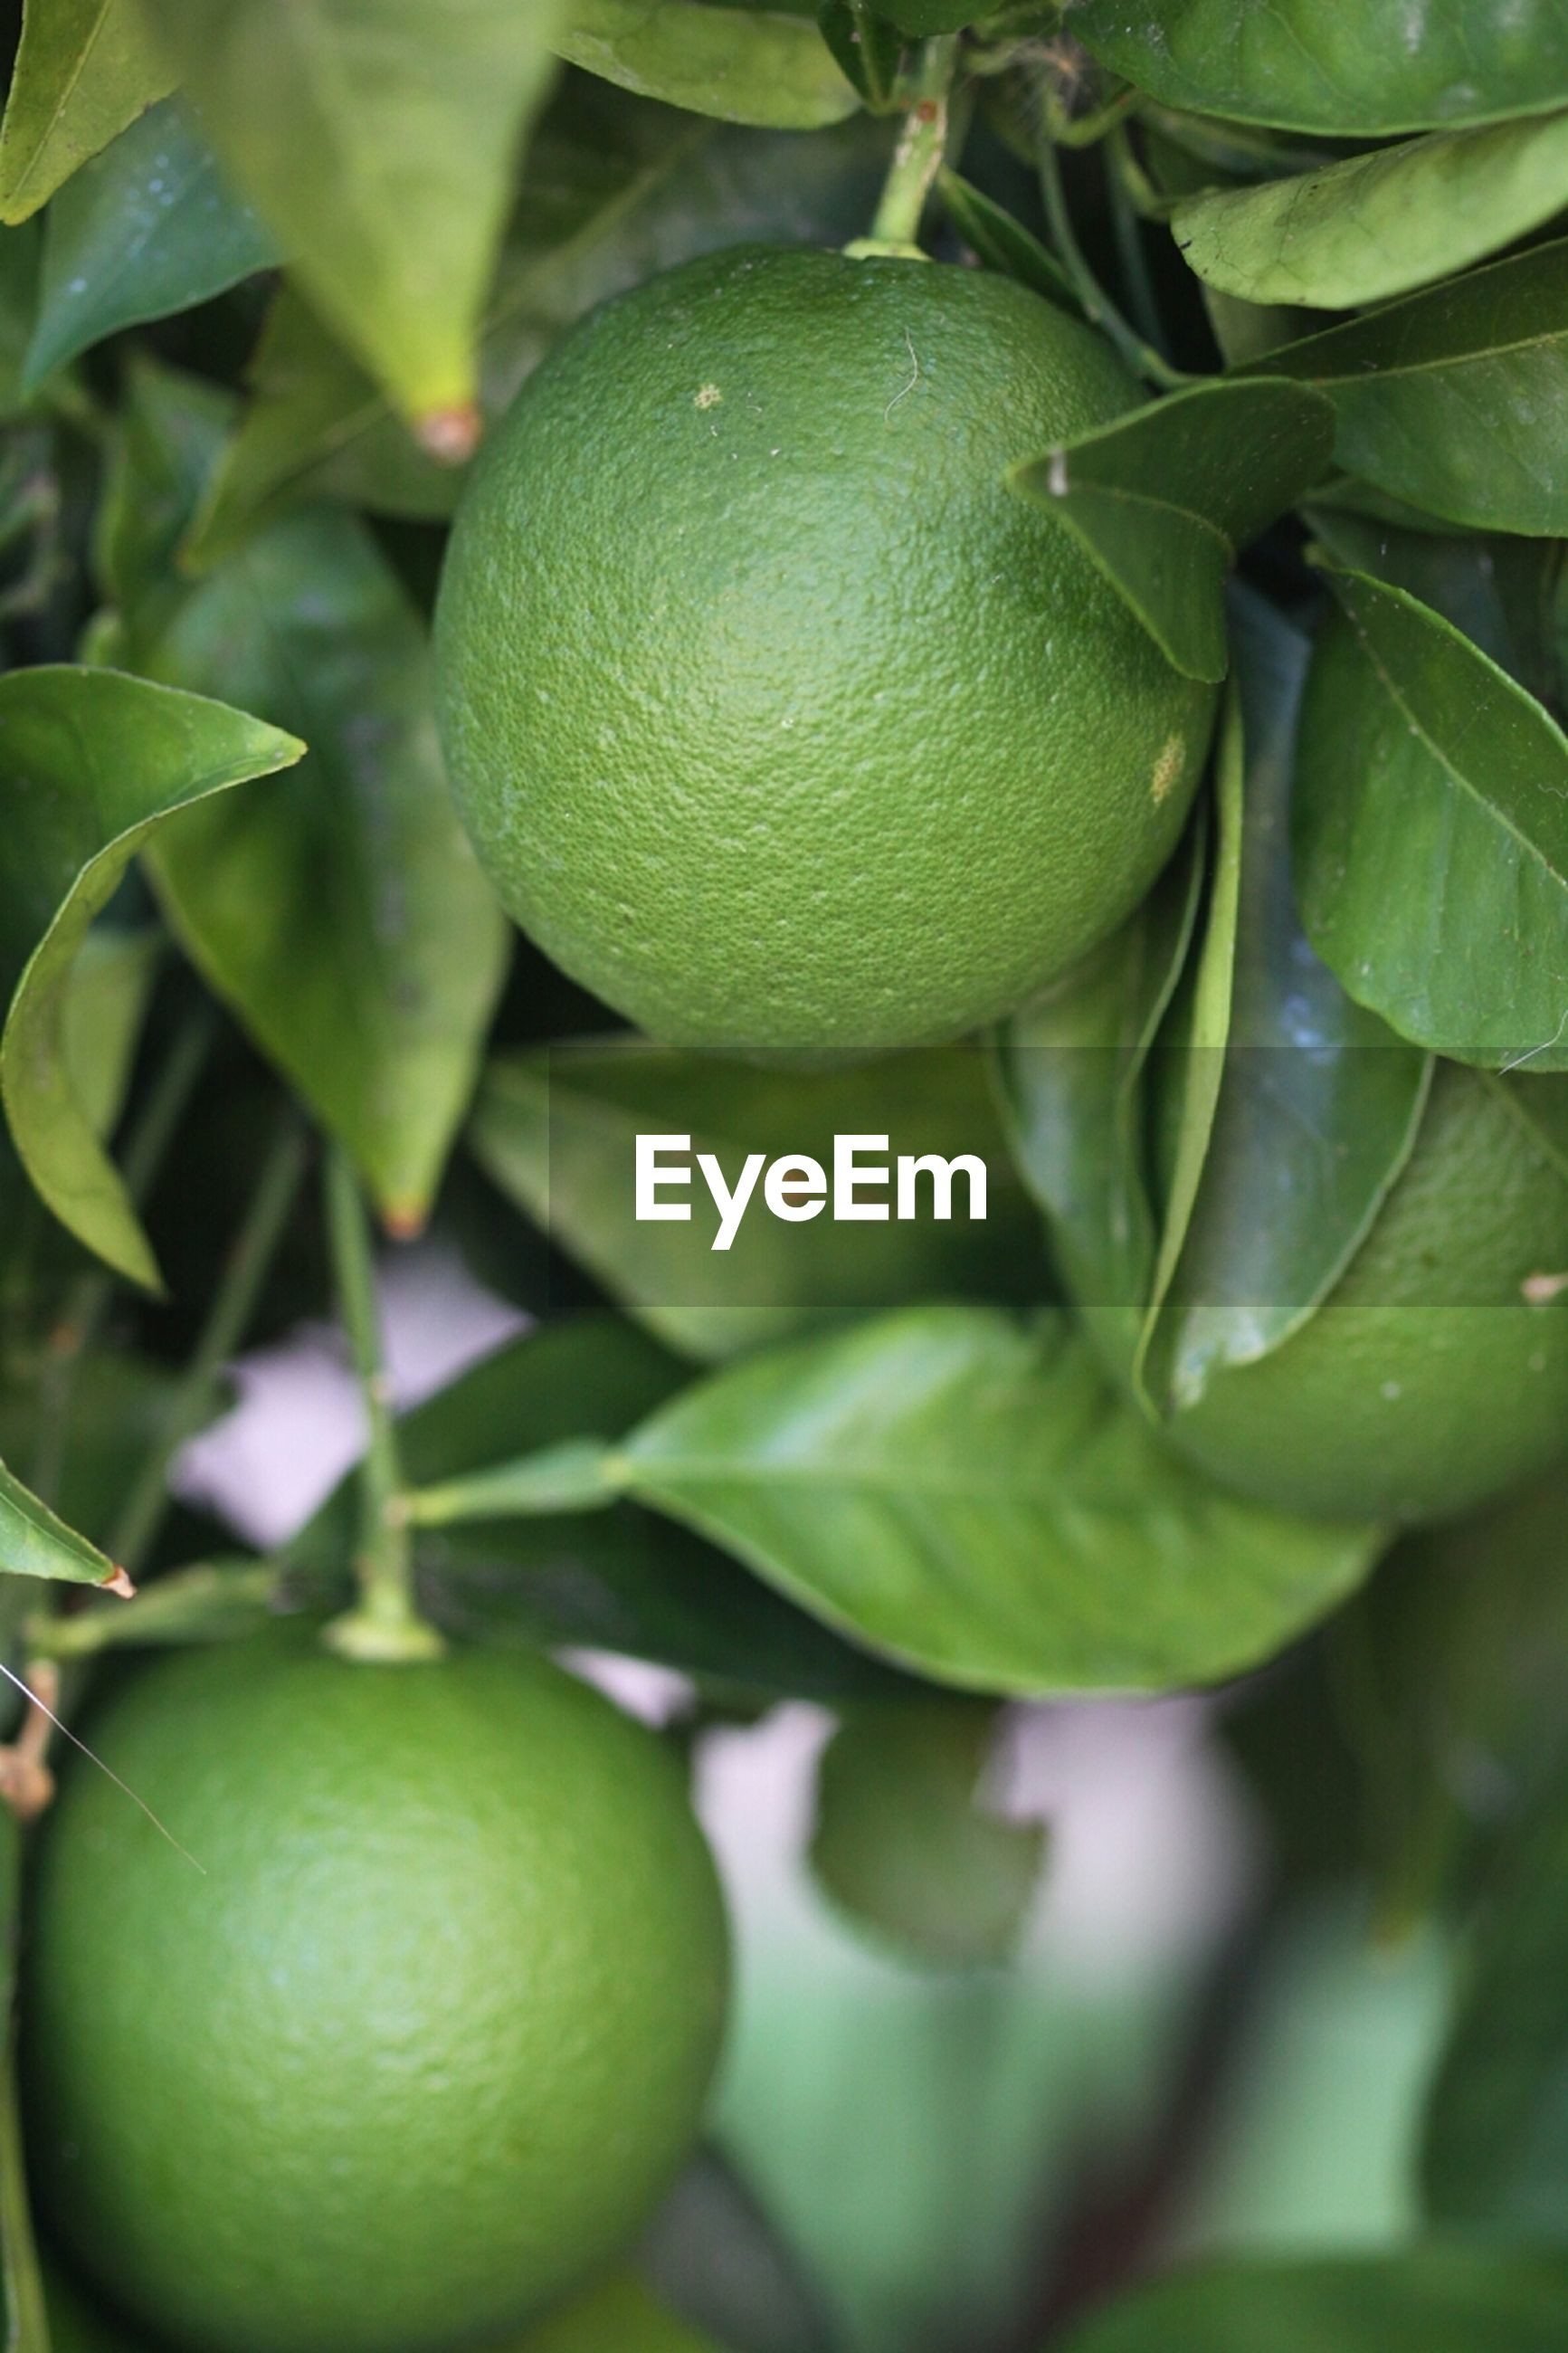 fruit, food and drink, green color, leaf, freshness, healthy eating, growth, food, close-up, tree, focus on foreground, branch, nature, ripe, green, outdoors, growing, day, no people, lemon